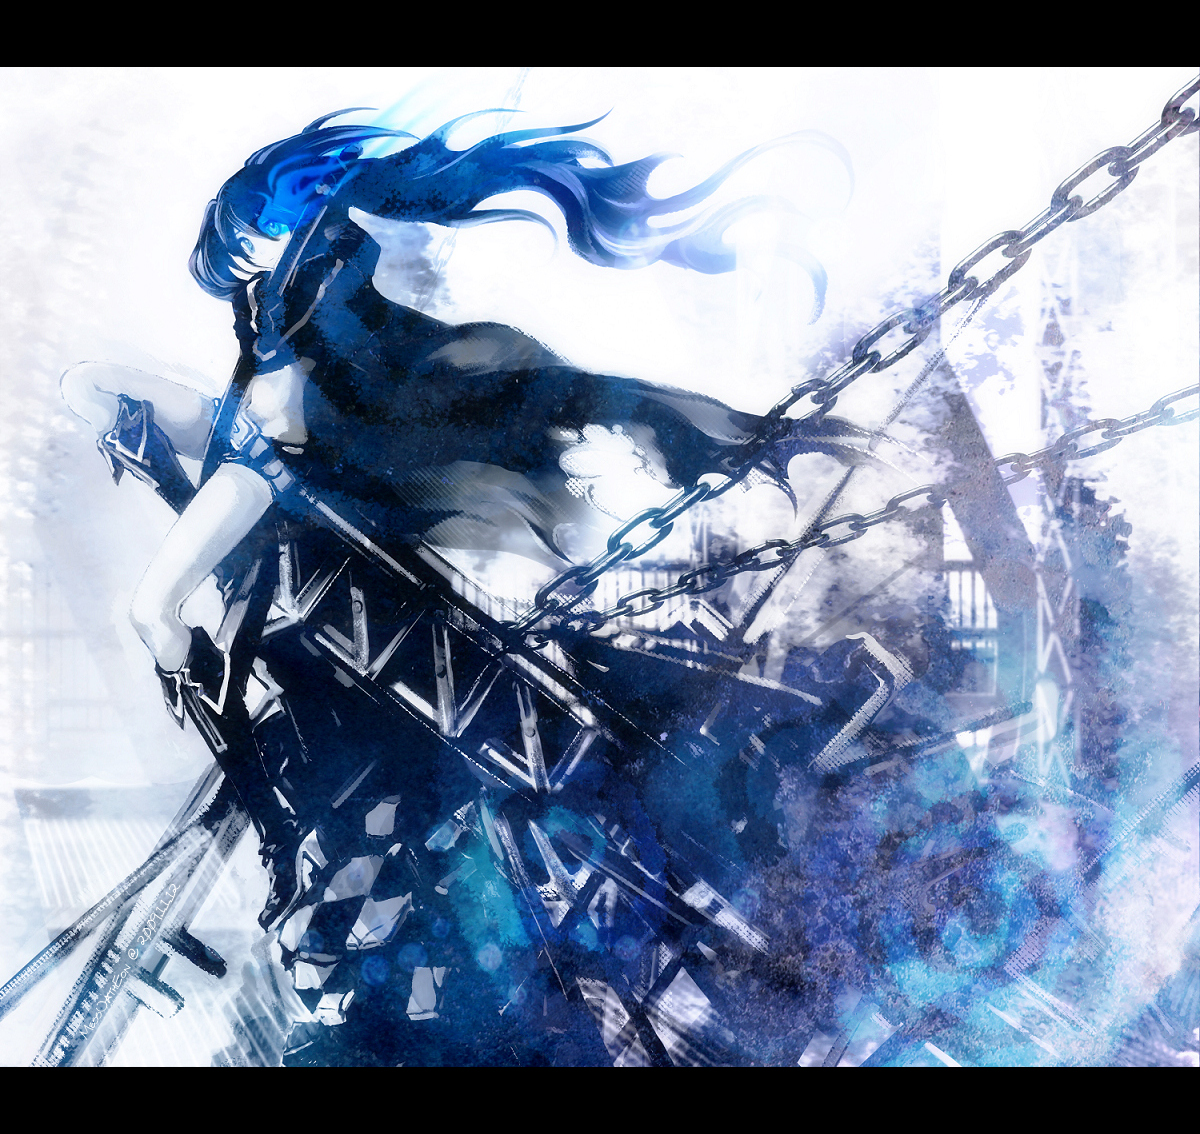 black rock shooter(vocaloid) images black rock shooter :3 hd